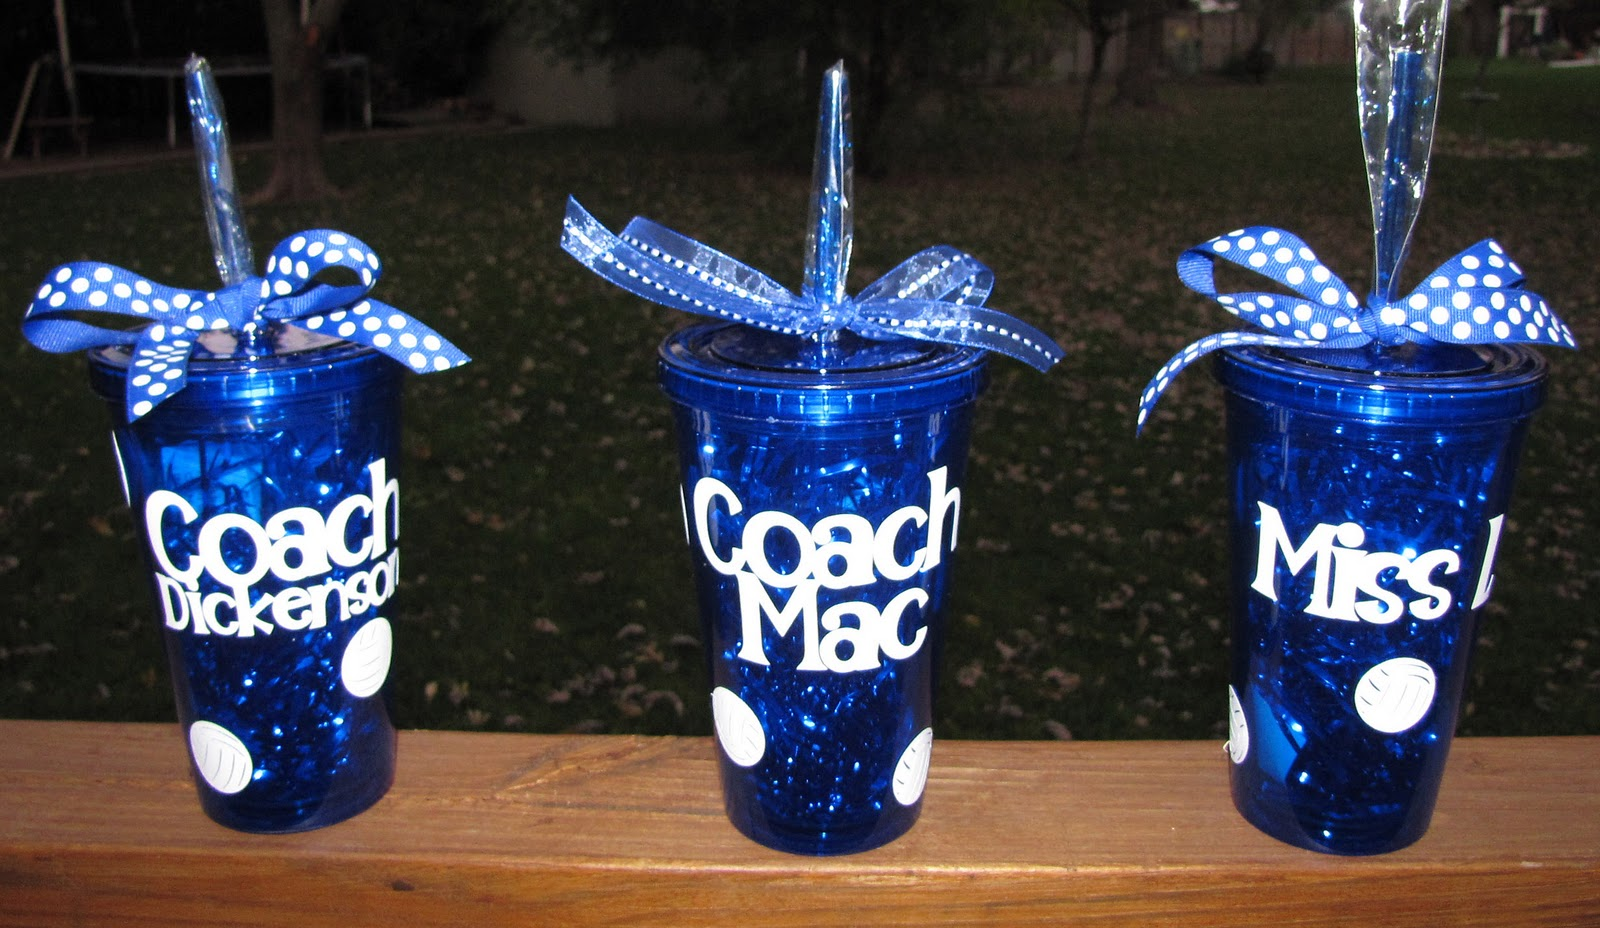 So here are my decorated tumblers for my girls' volleyball coaches: